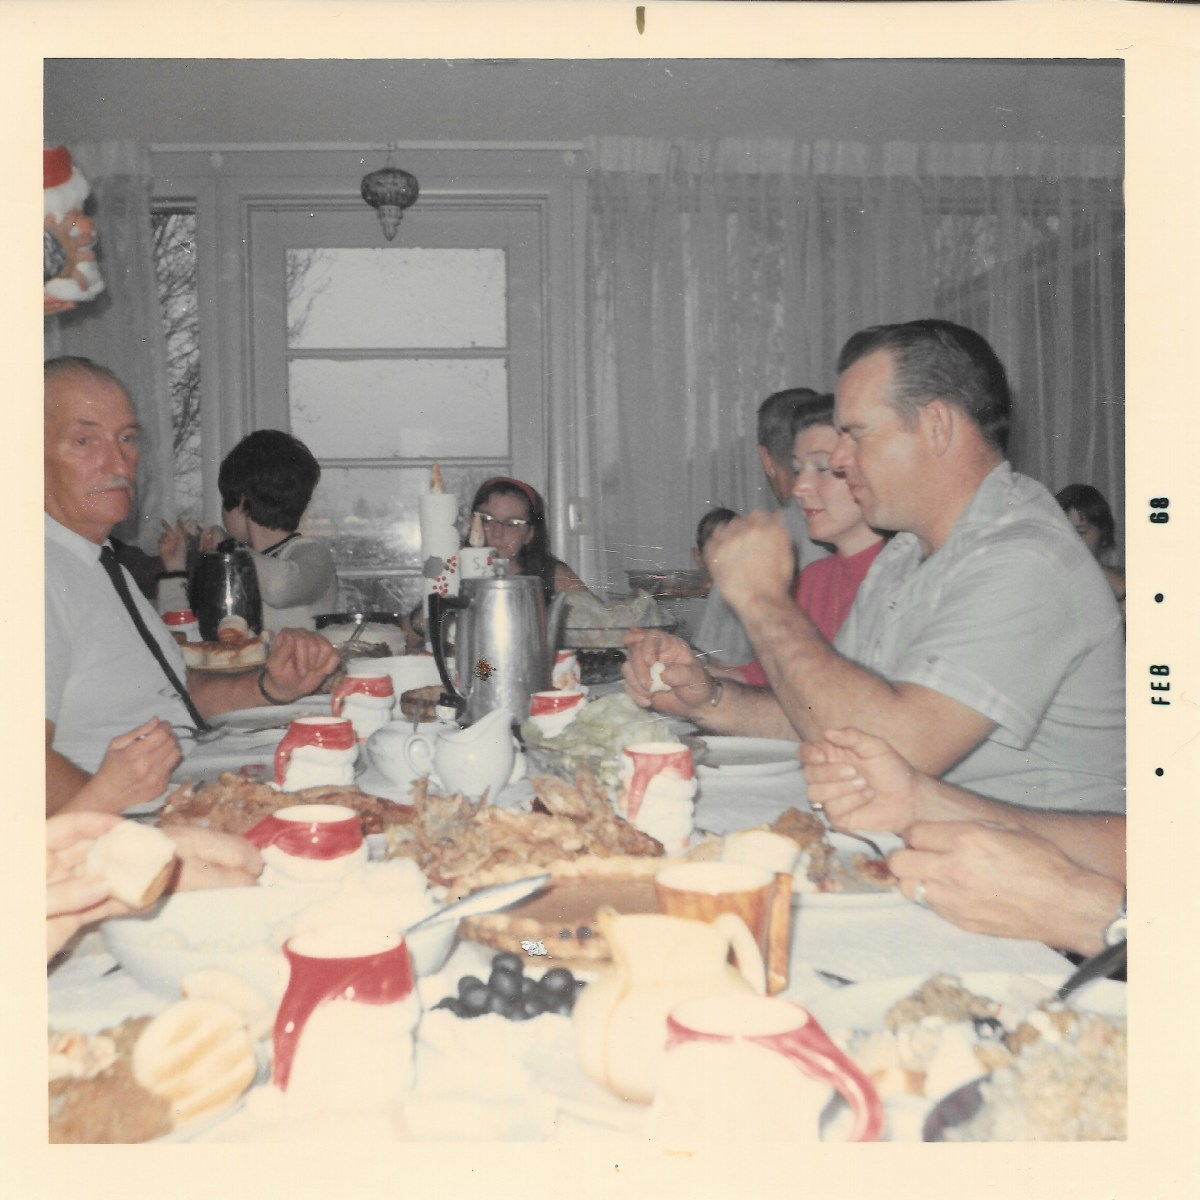 My dad and mom are on the right. I'm at the end of the table.